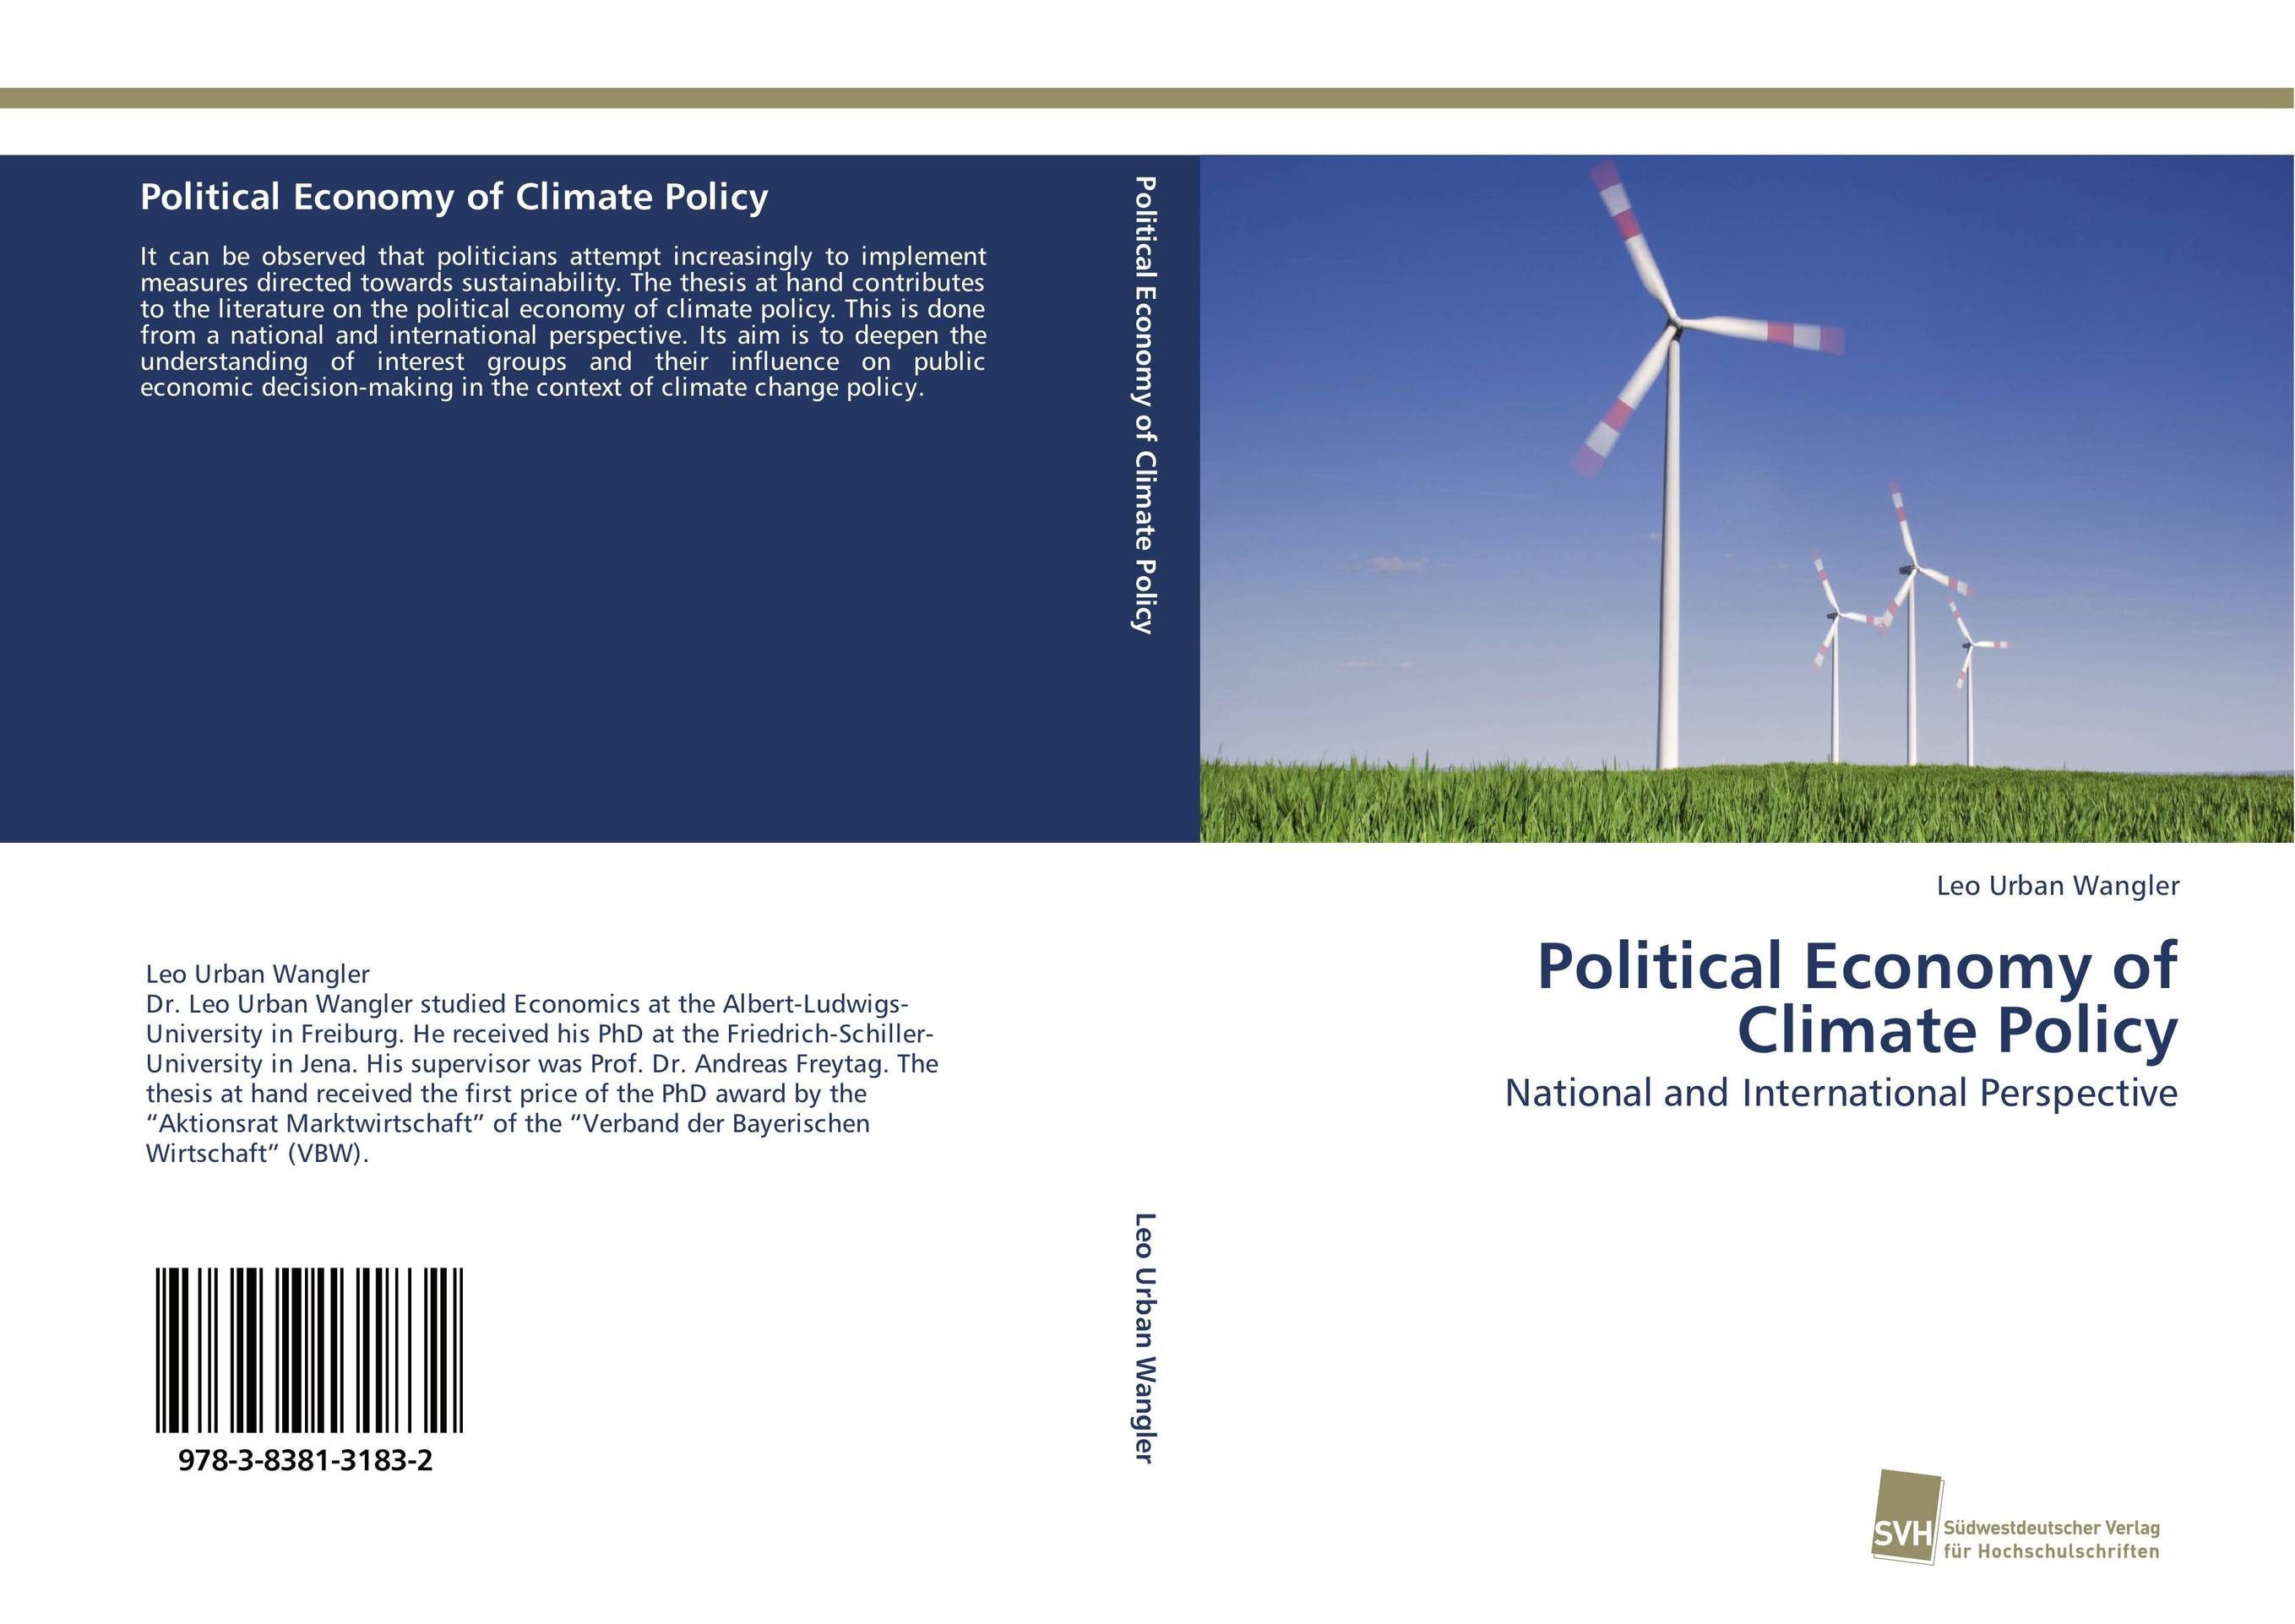 Political Economy of Climate Policy